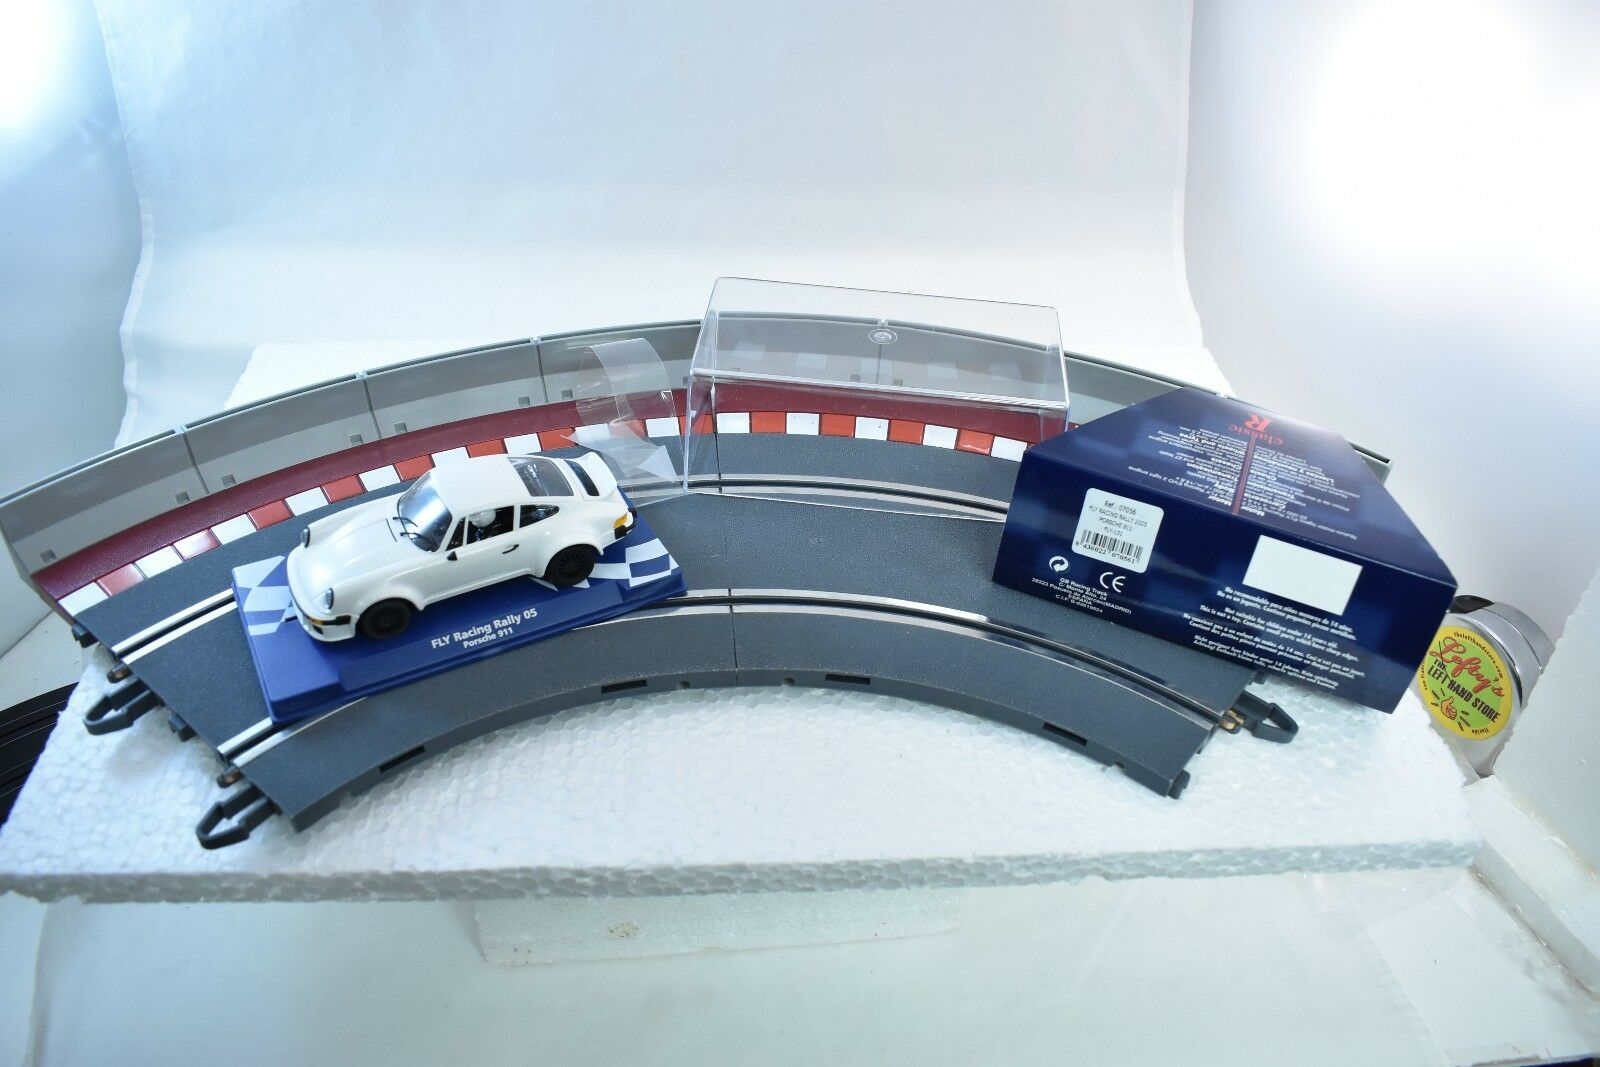 07056 FLY CAR MODEL 1 32 SCALE RALLY 2005 PORSCHE 911 FLY-131 WHITE CLASSIC R